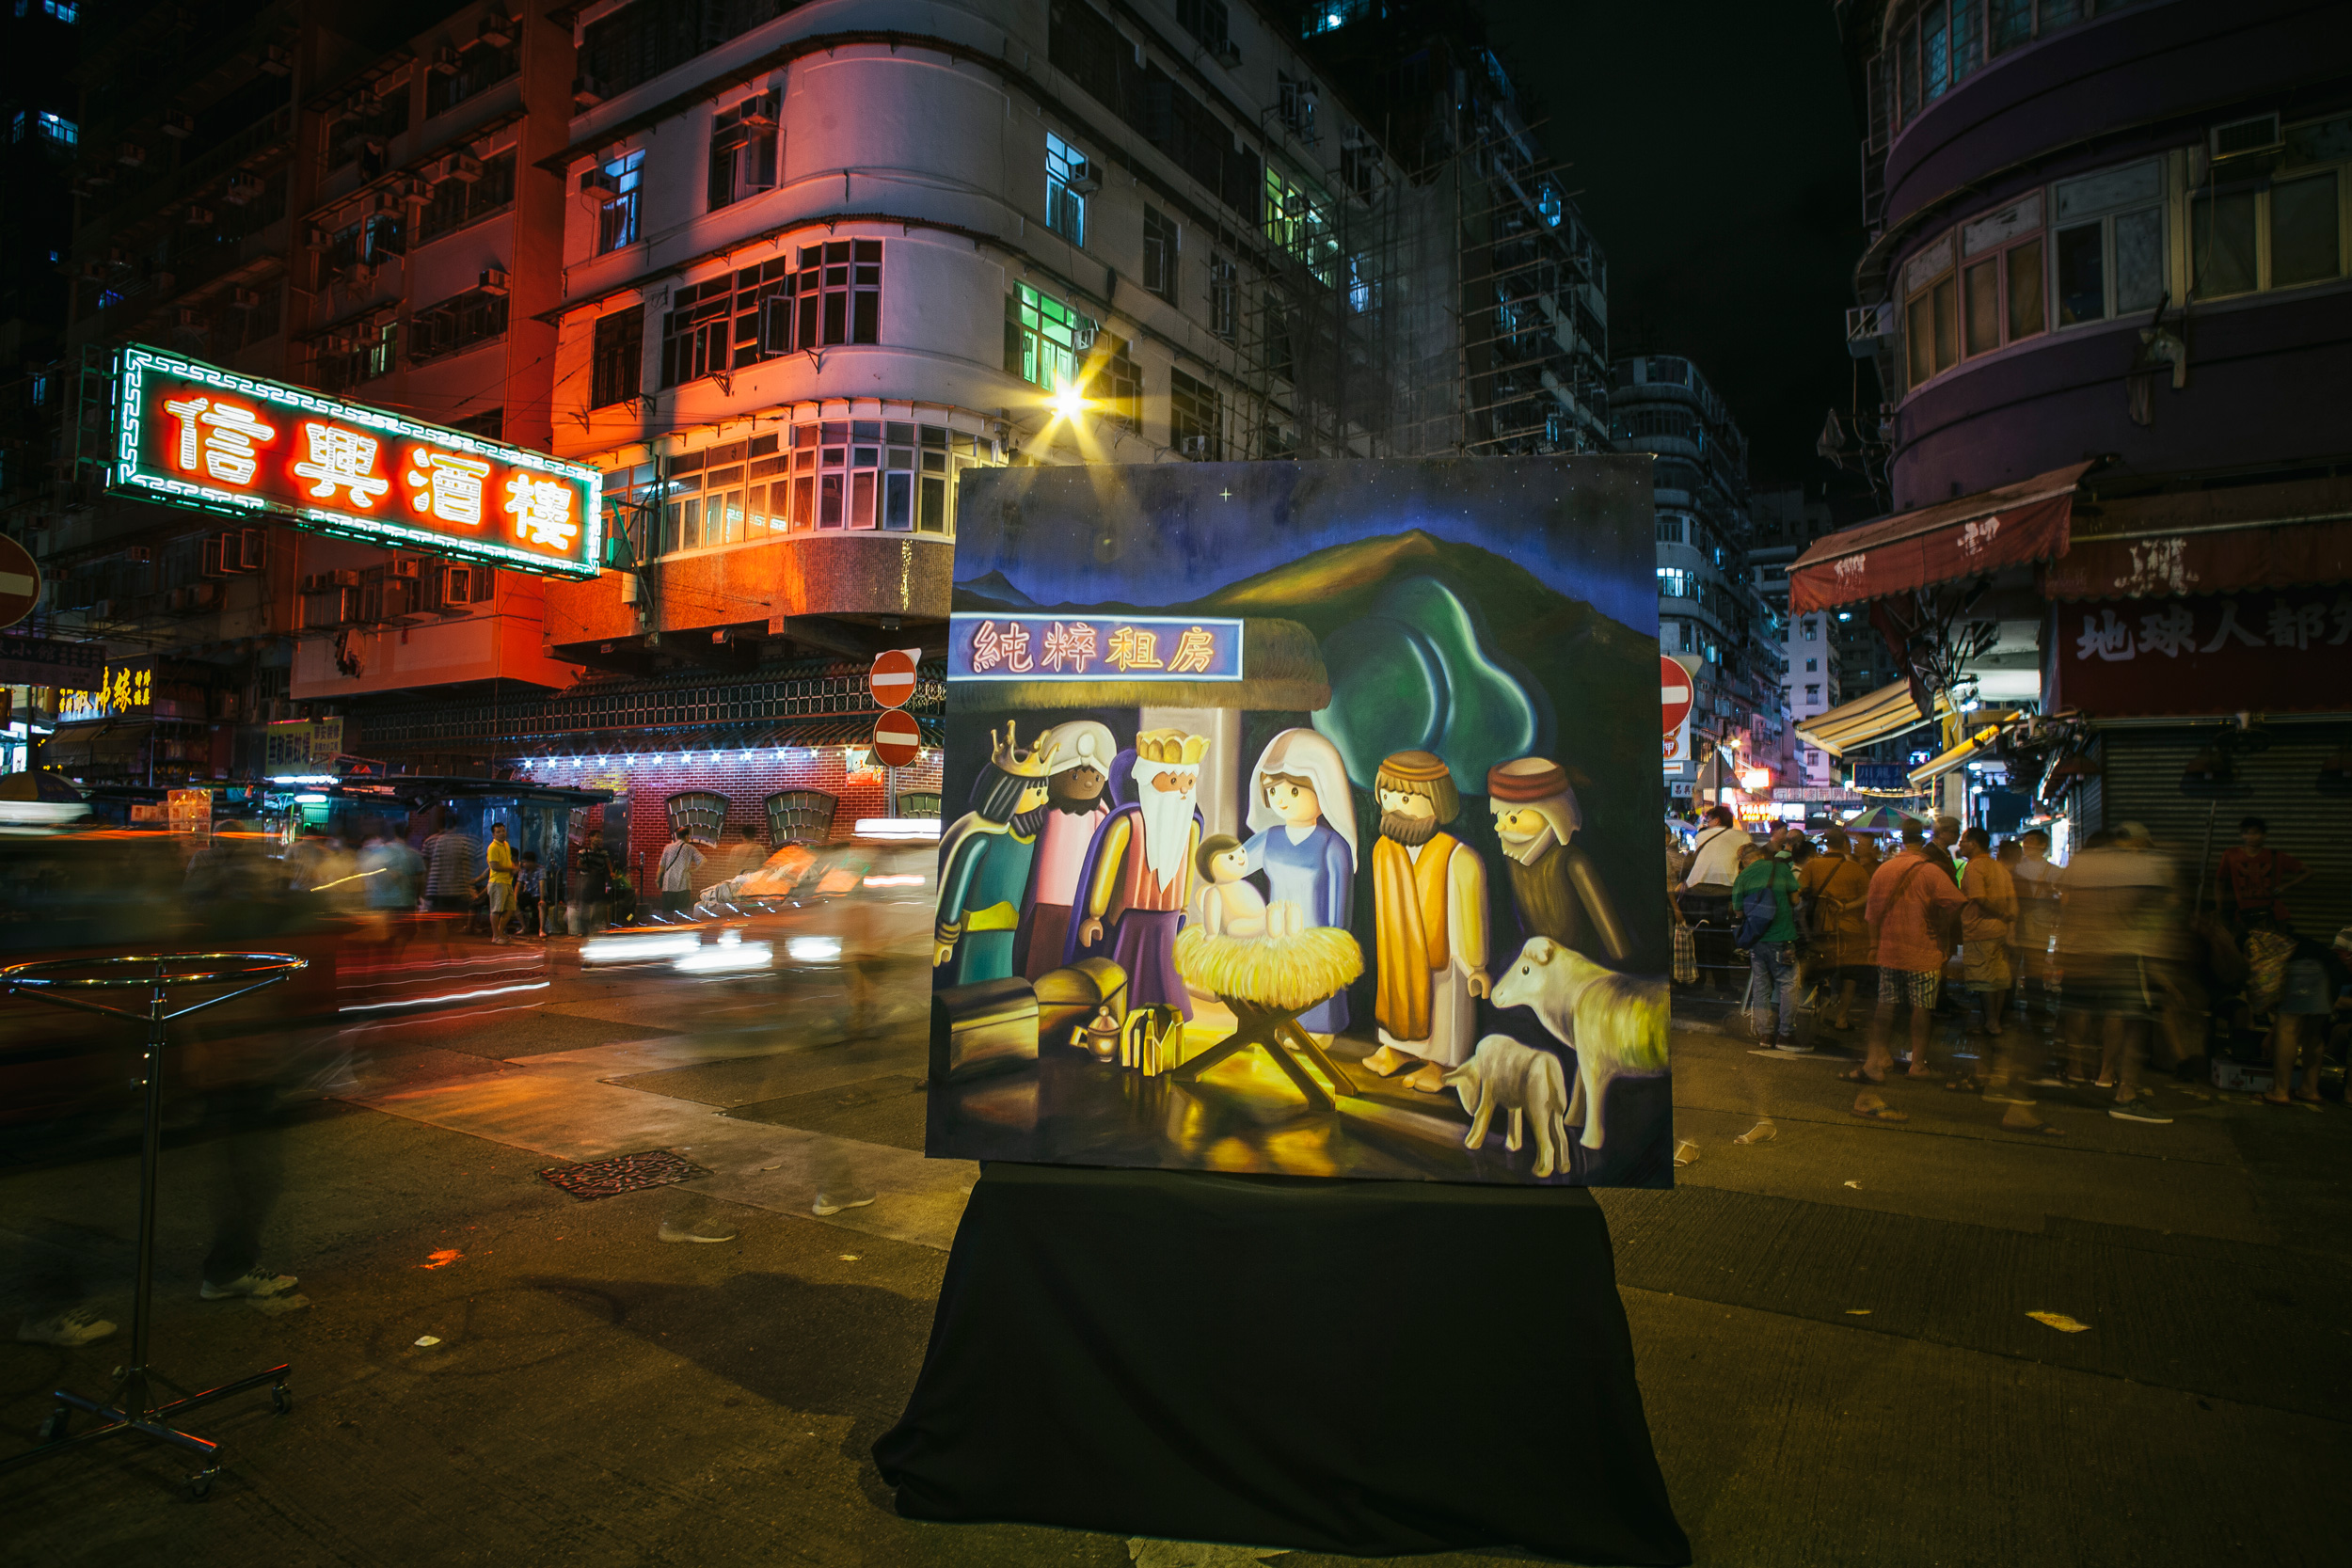 I brought the painting to Shum Shui Po in the middle of summer. The heat helps us to think outside the stereotypical feelings about Christmas.